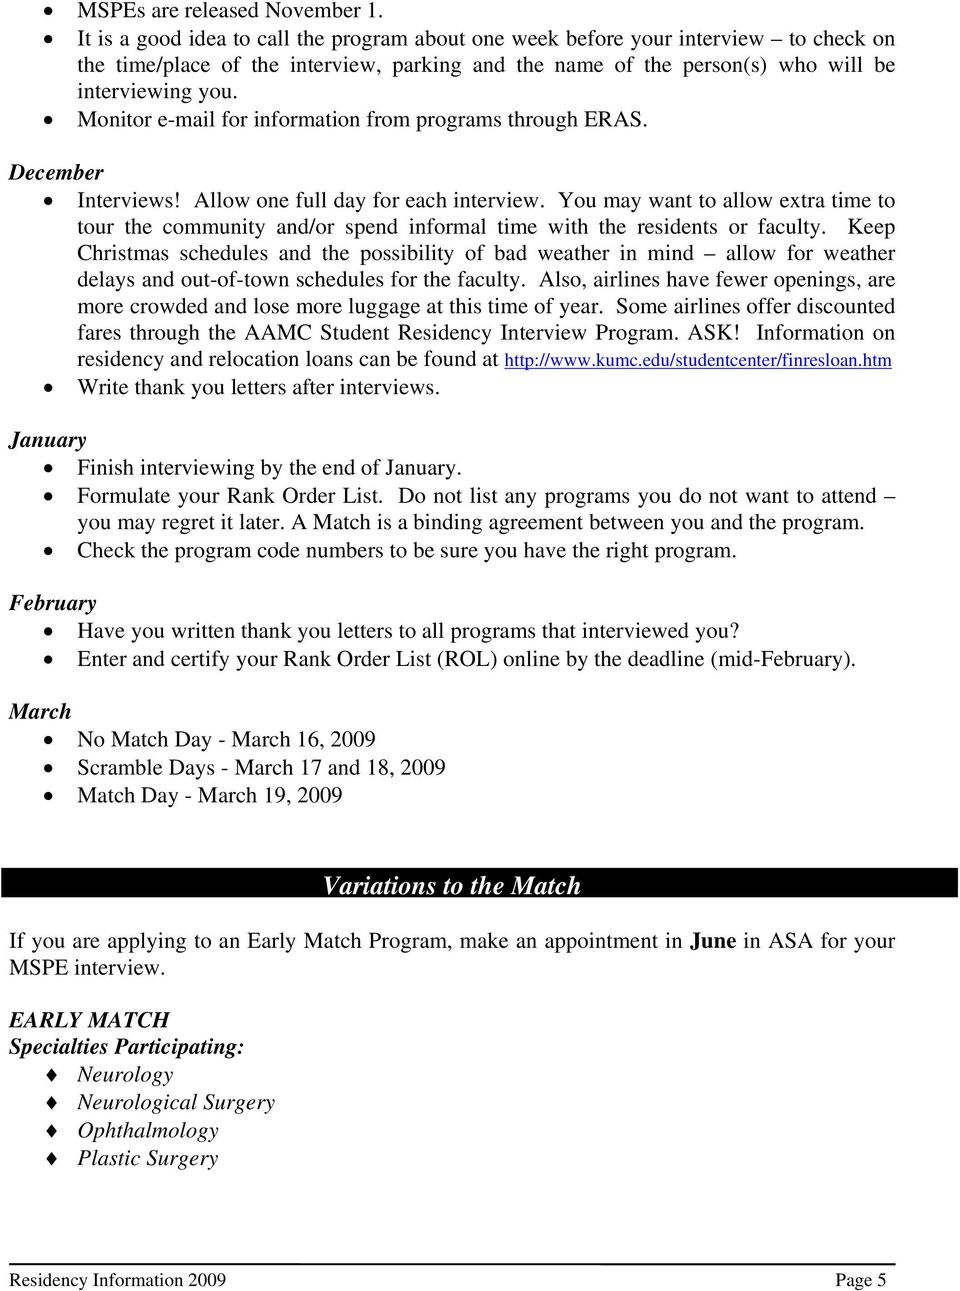 preparing for residency pdf monitor e mail for information from programs through eras interviews allow one